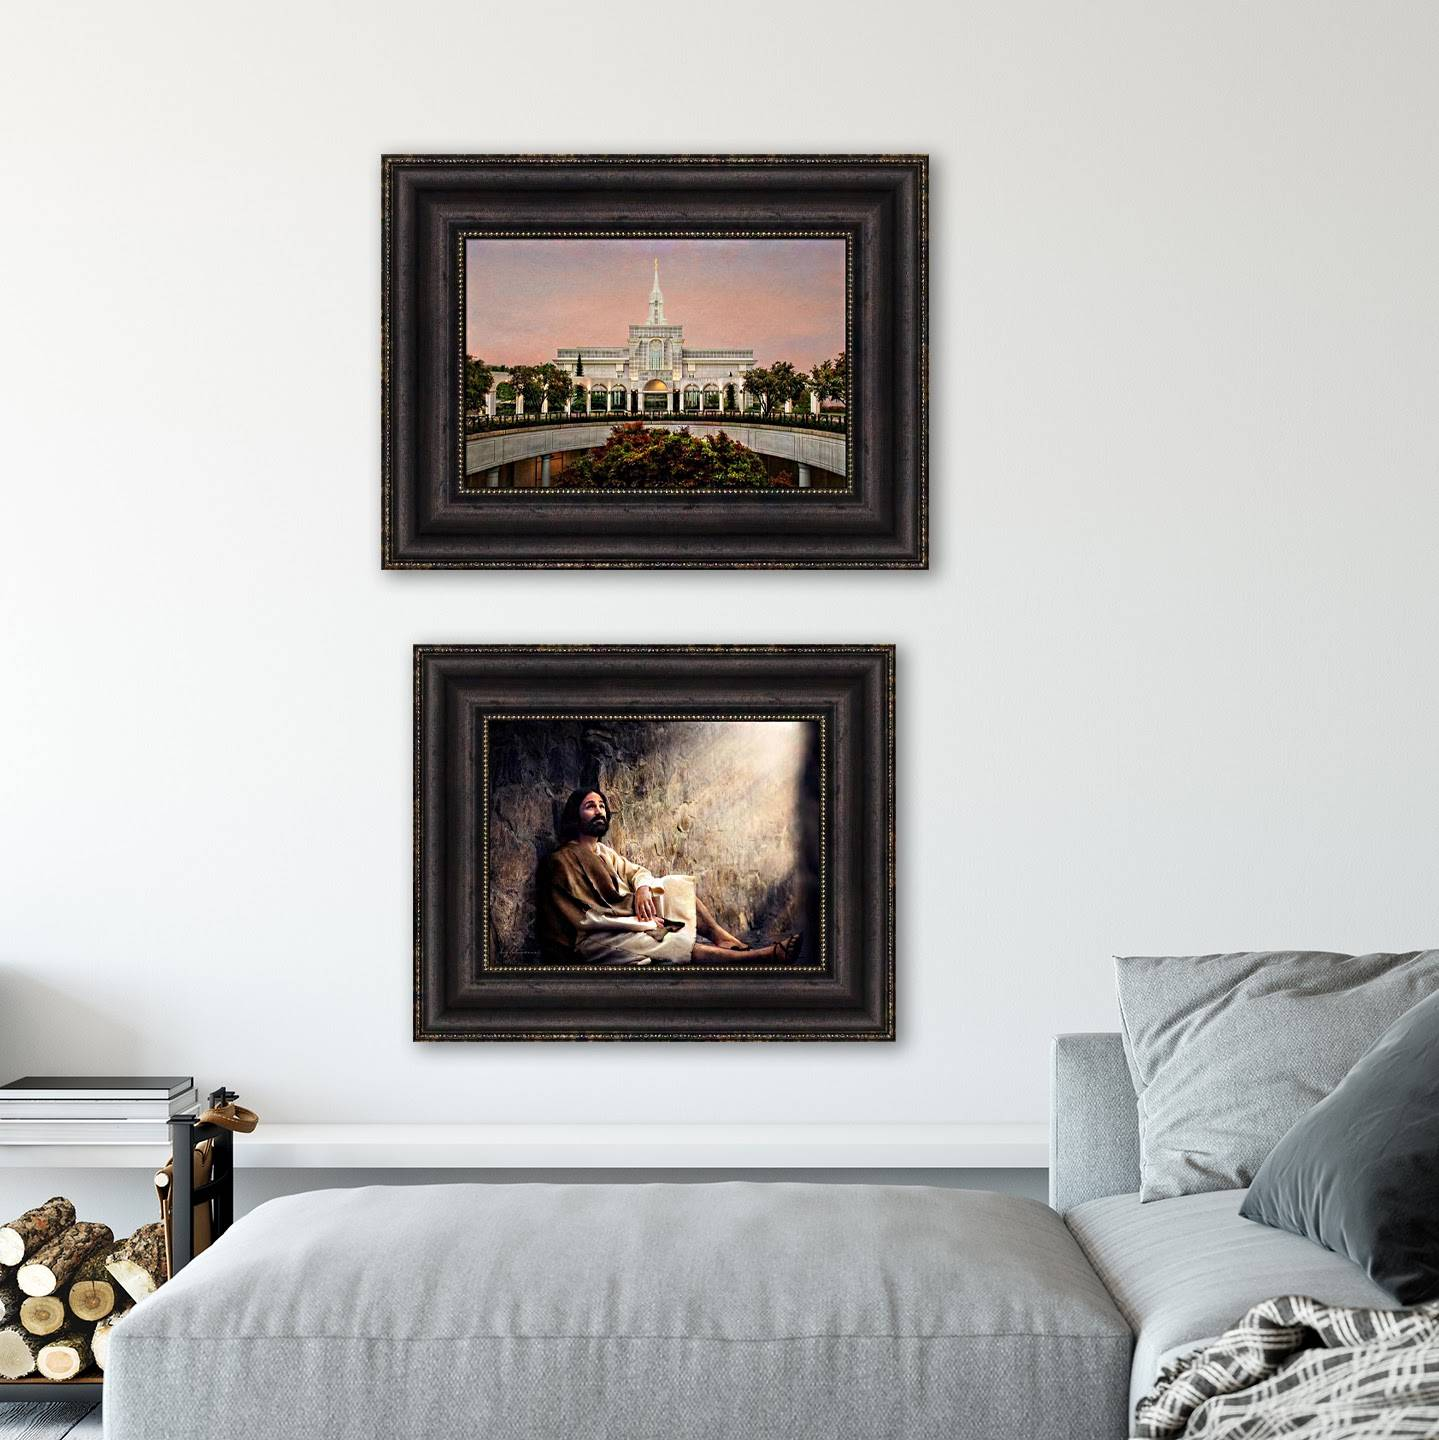 Environment shot of two LDS art paintings hung on a bedroom wall.